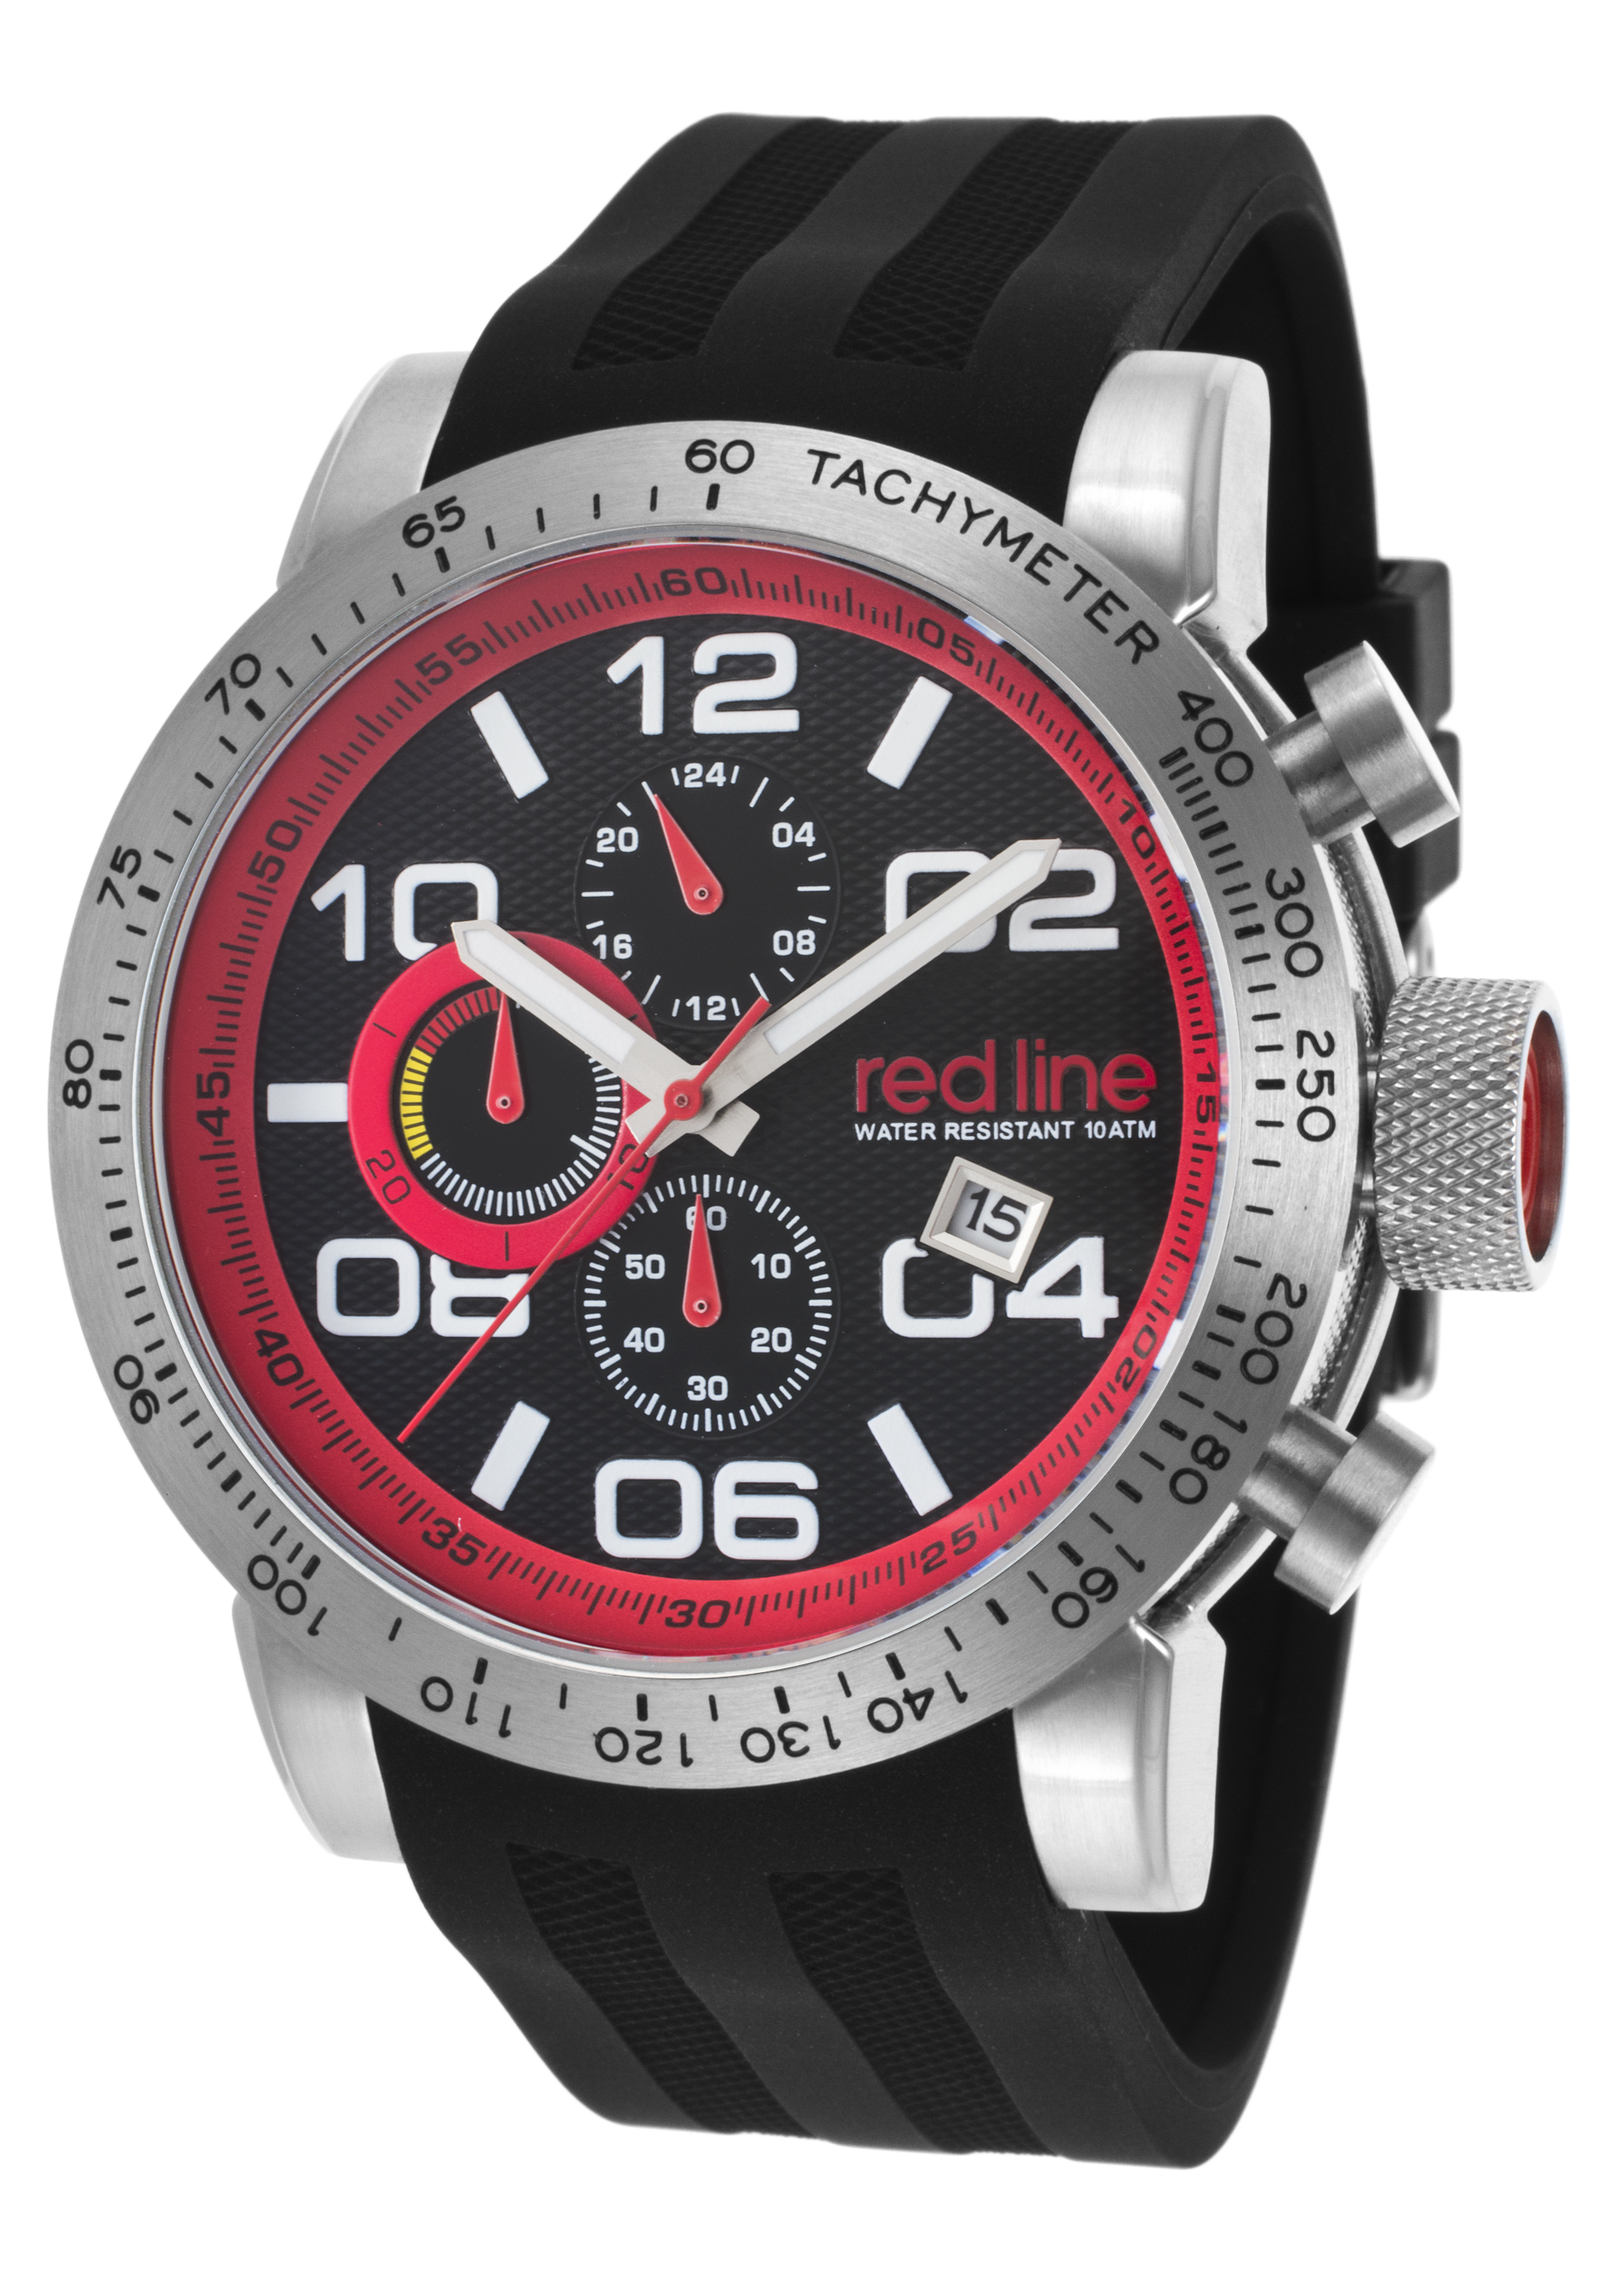 motor have and personalities guide between racing partnerships watches goes back auto manufacturers an the watch oris one teams williams exemplary formula collection cars association way or